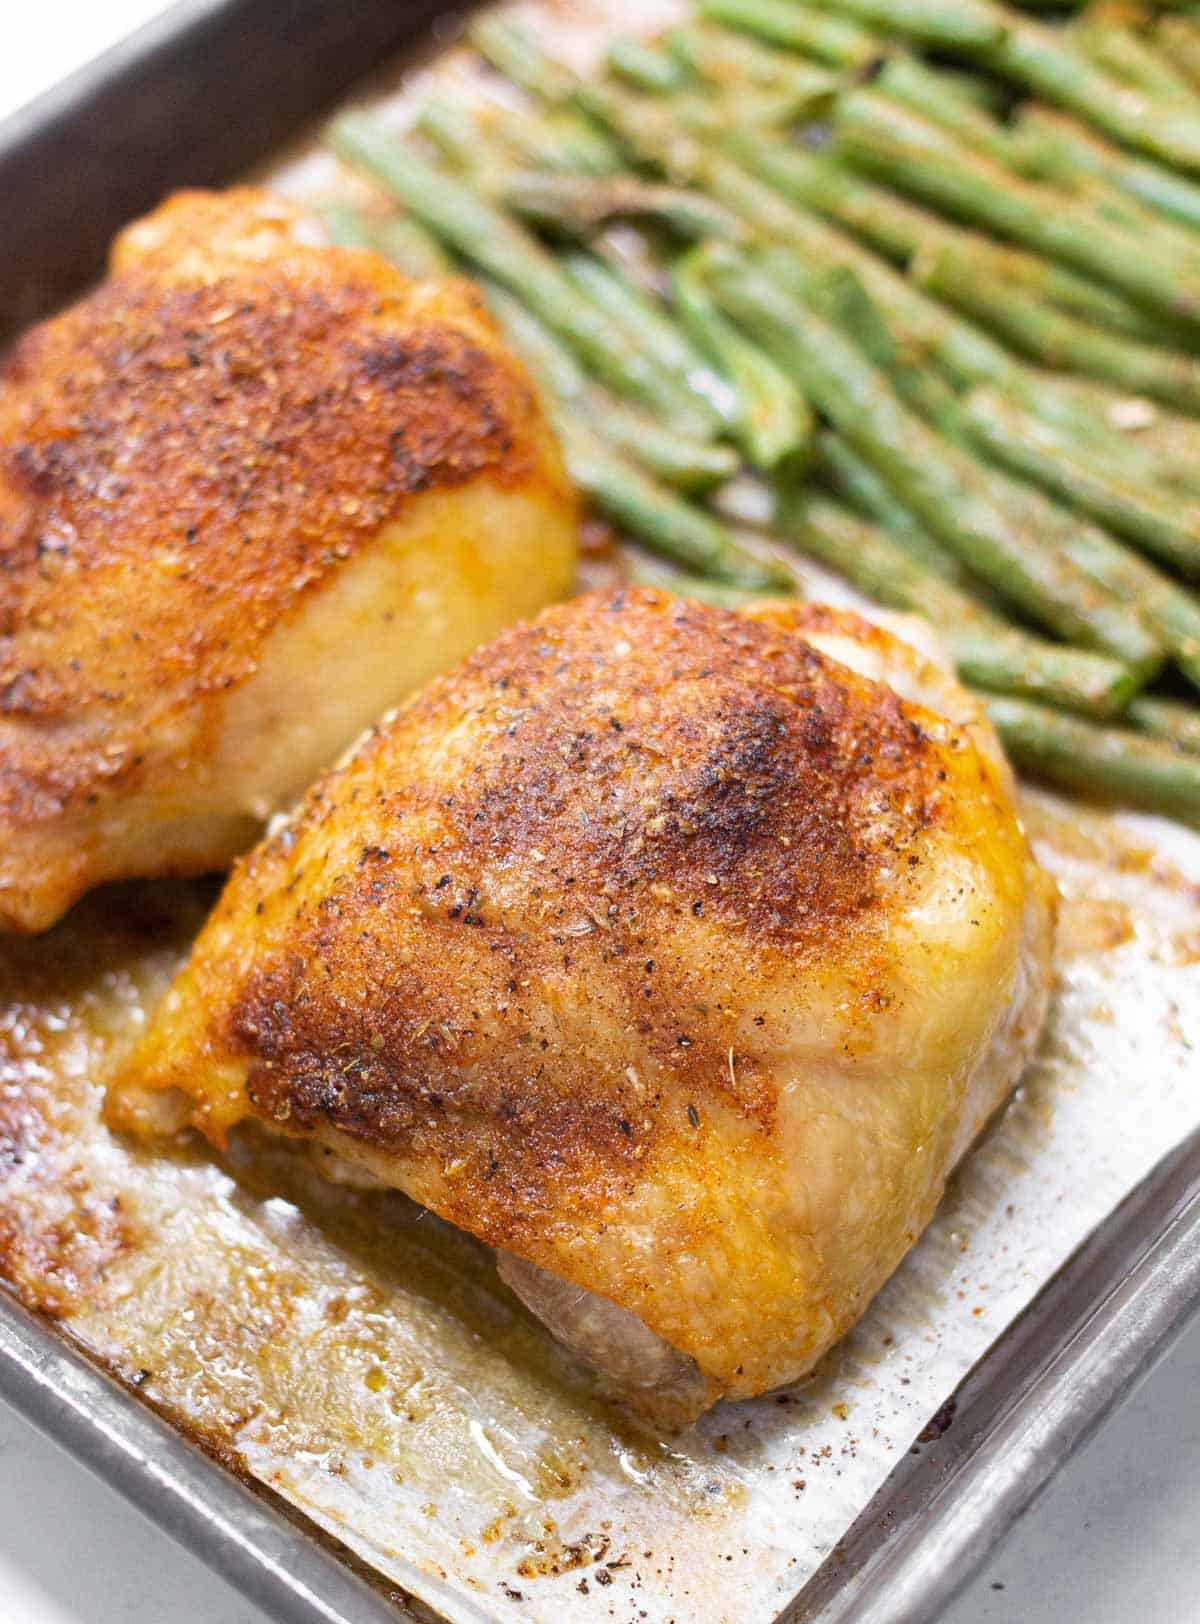 Close up of baked bone-in skin-on chicken thigh coated in seasoning with green beans in the background.